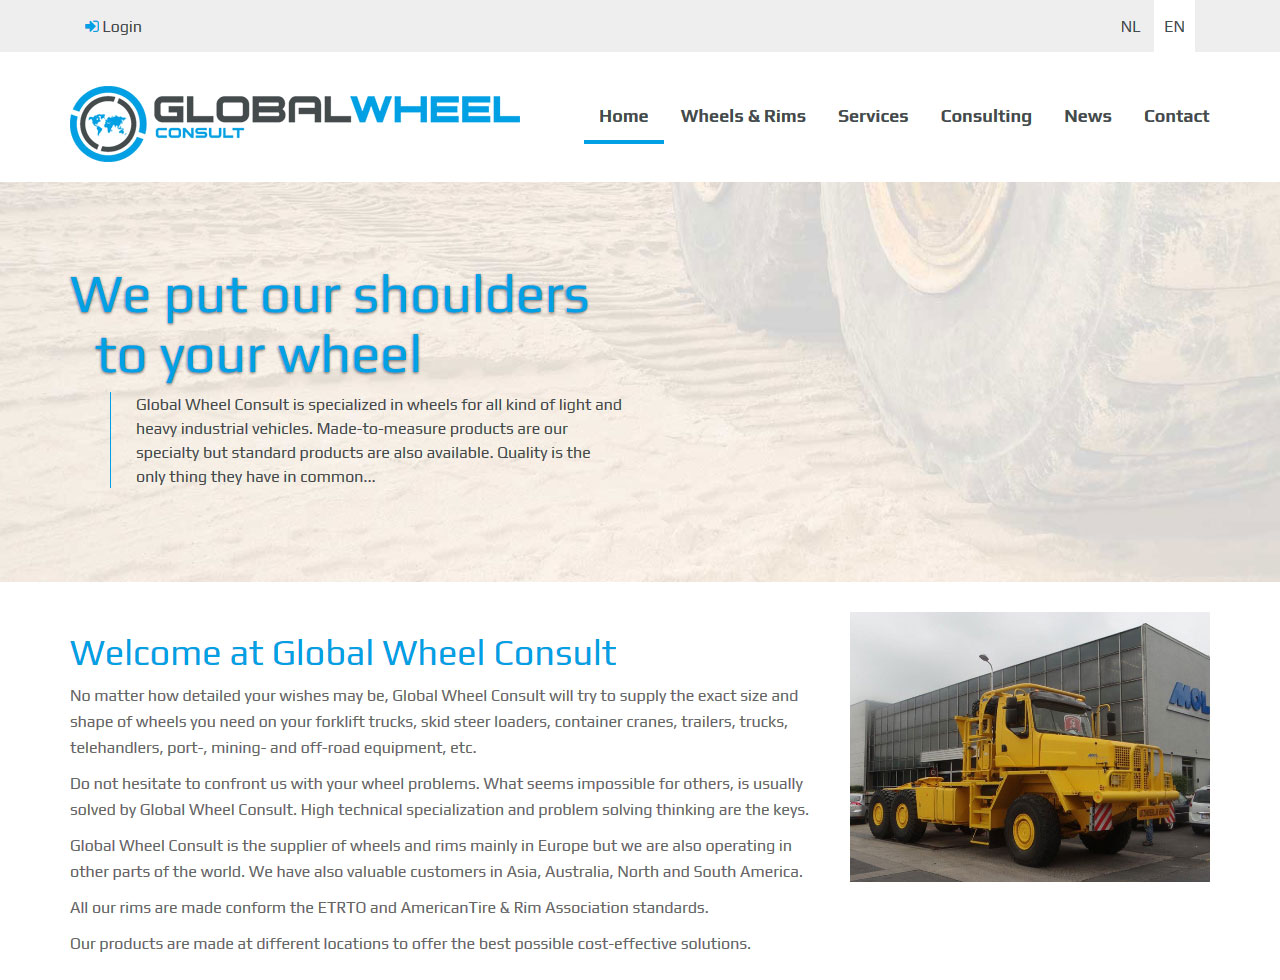 Global Wheel Consult